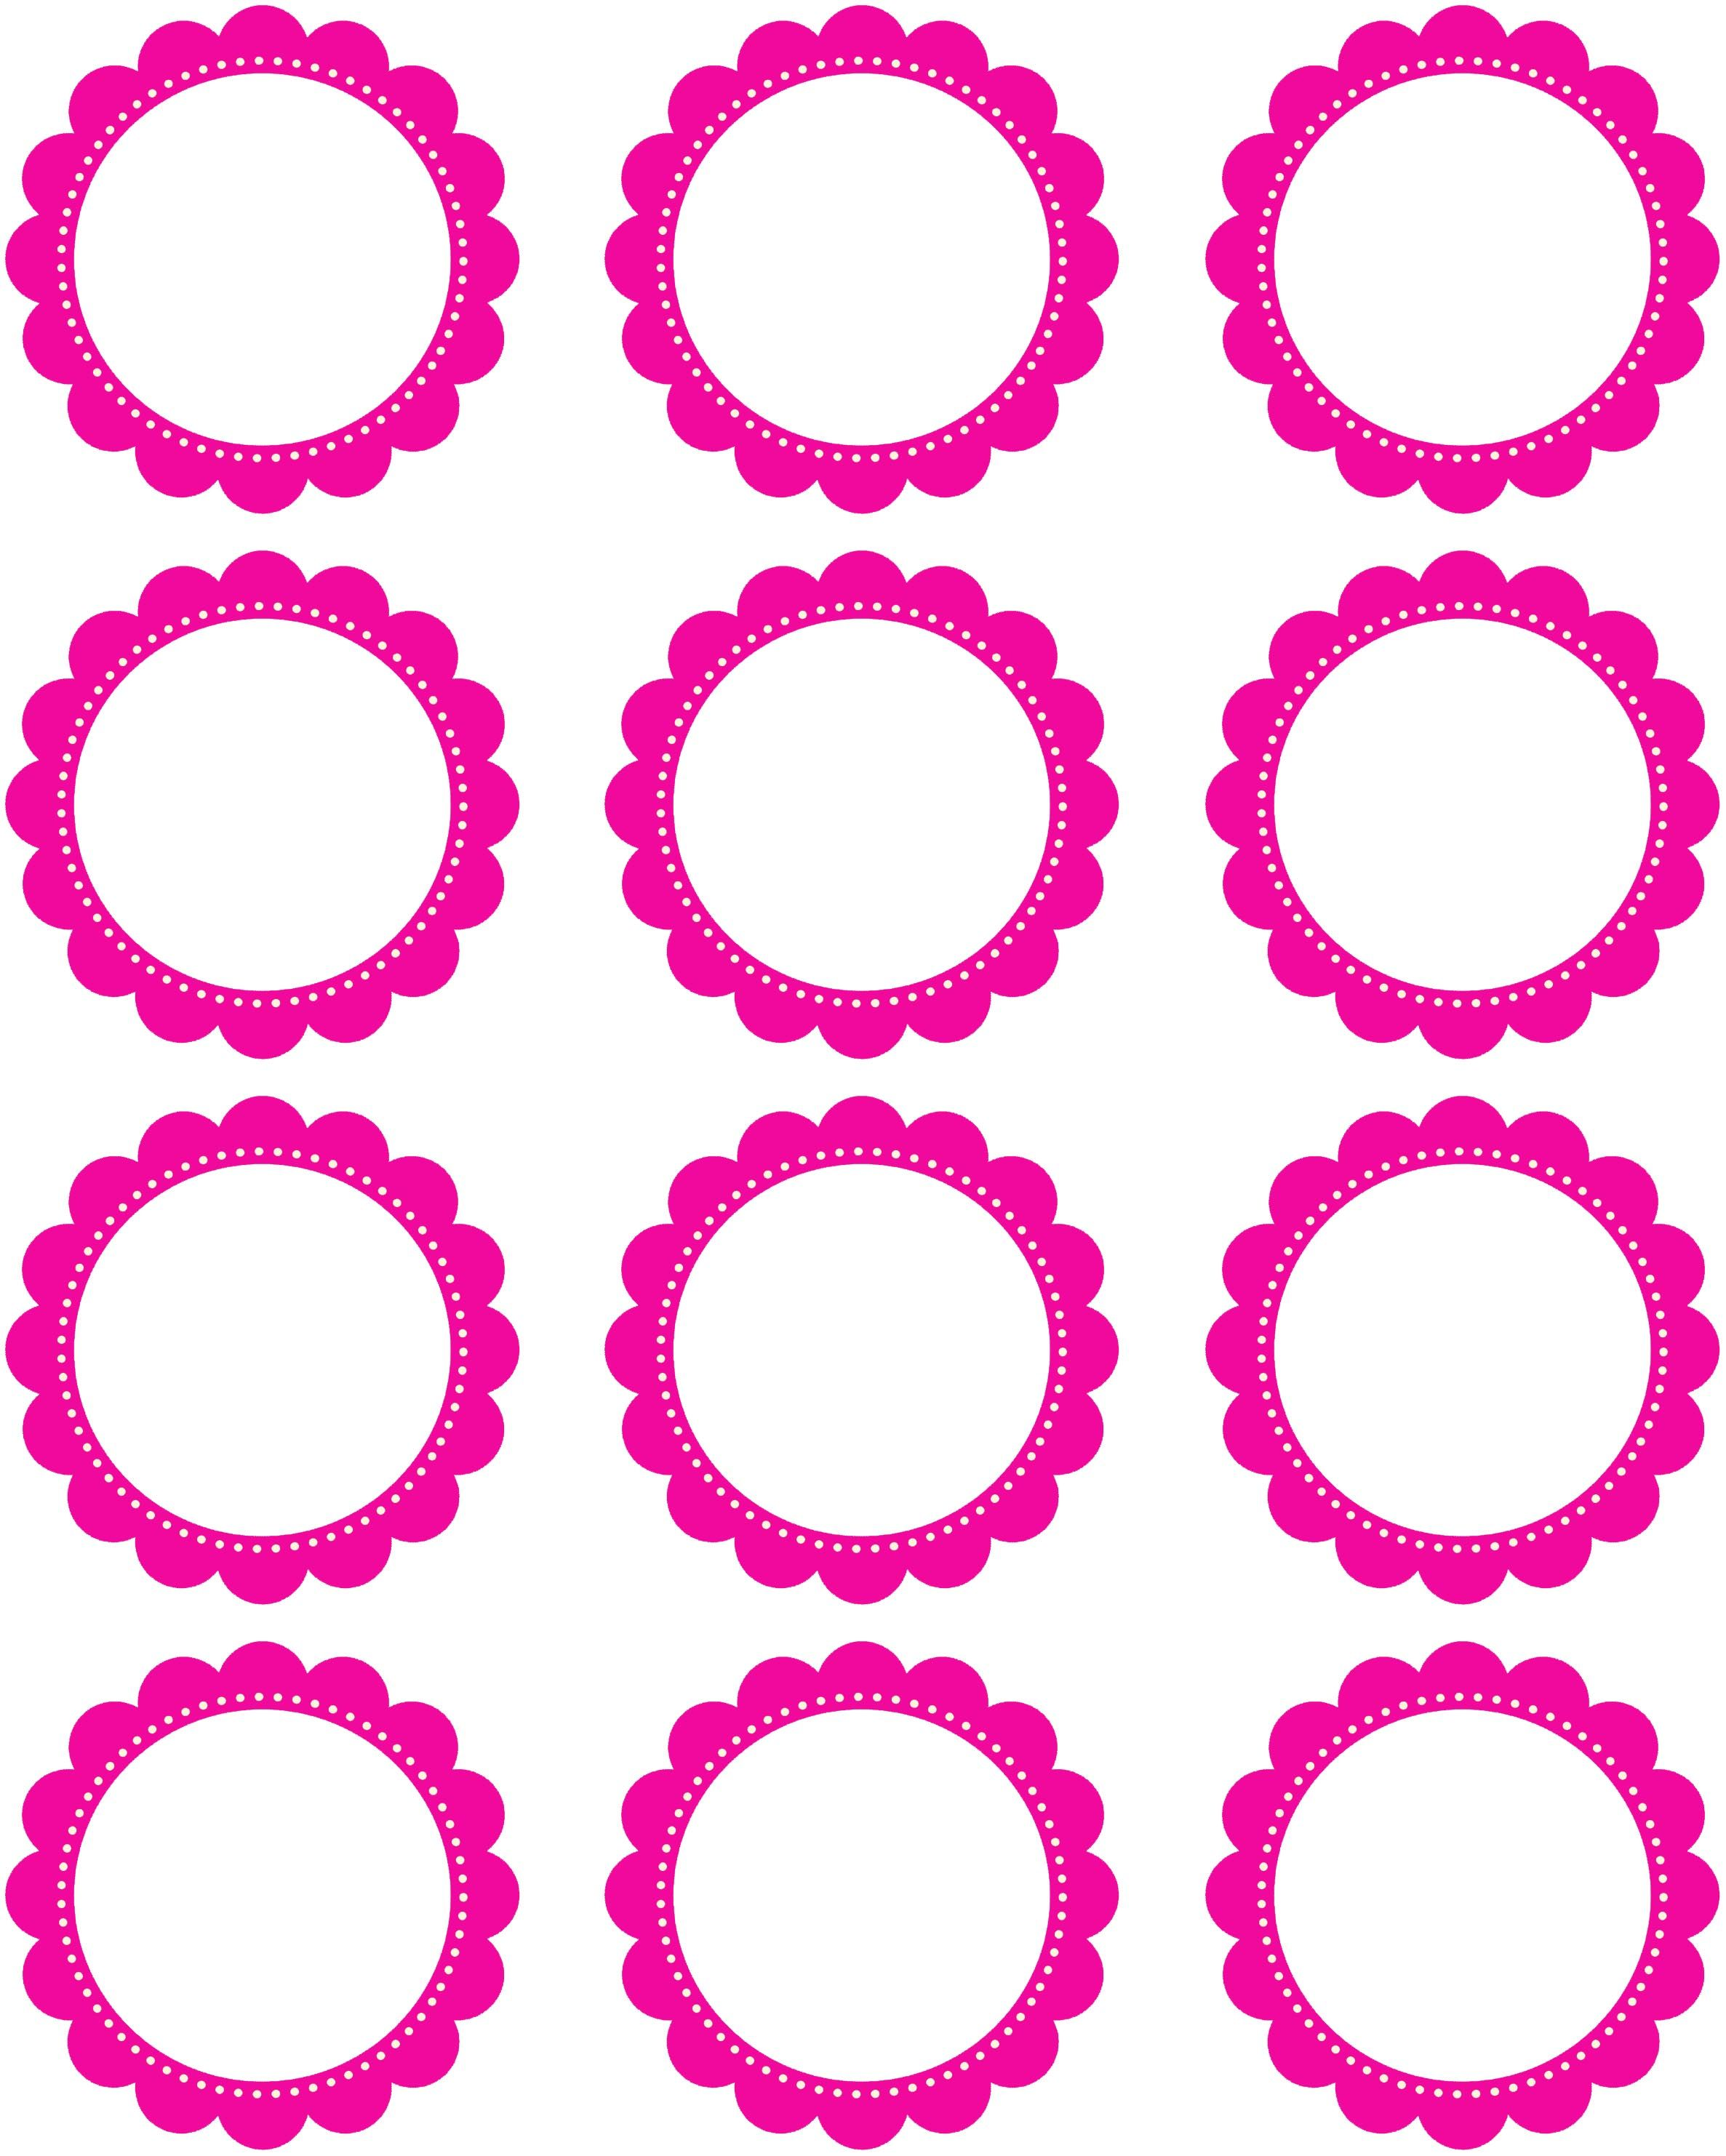 Great 1st Job Resume Template Thick 2 Circle Template Regular 2 Year Calendar Template 2007 Powerpoint Templates Free Young 2014 Monthly Calendar Template Pink2014 Resume Template Free Printable...2 Inch Hot Pink Scallop Circles | My Etsy Shoppe ..